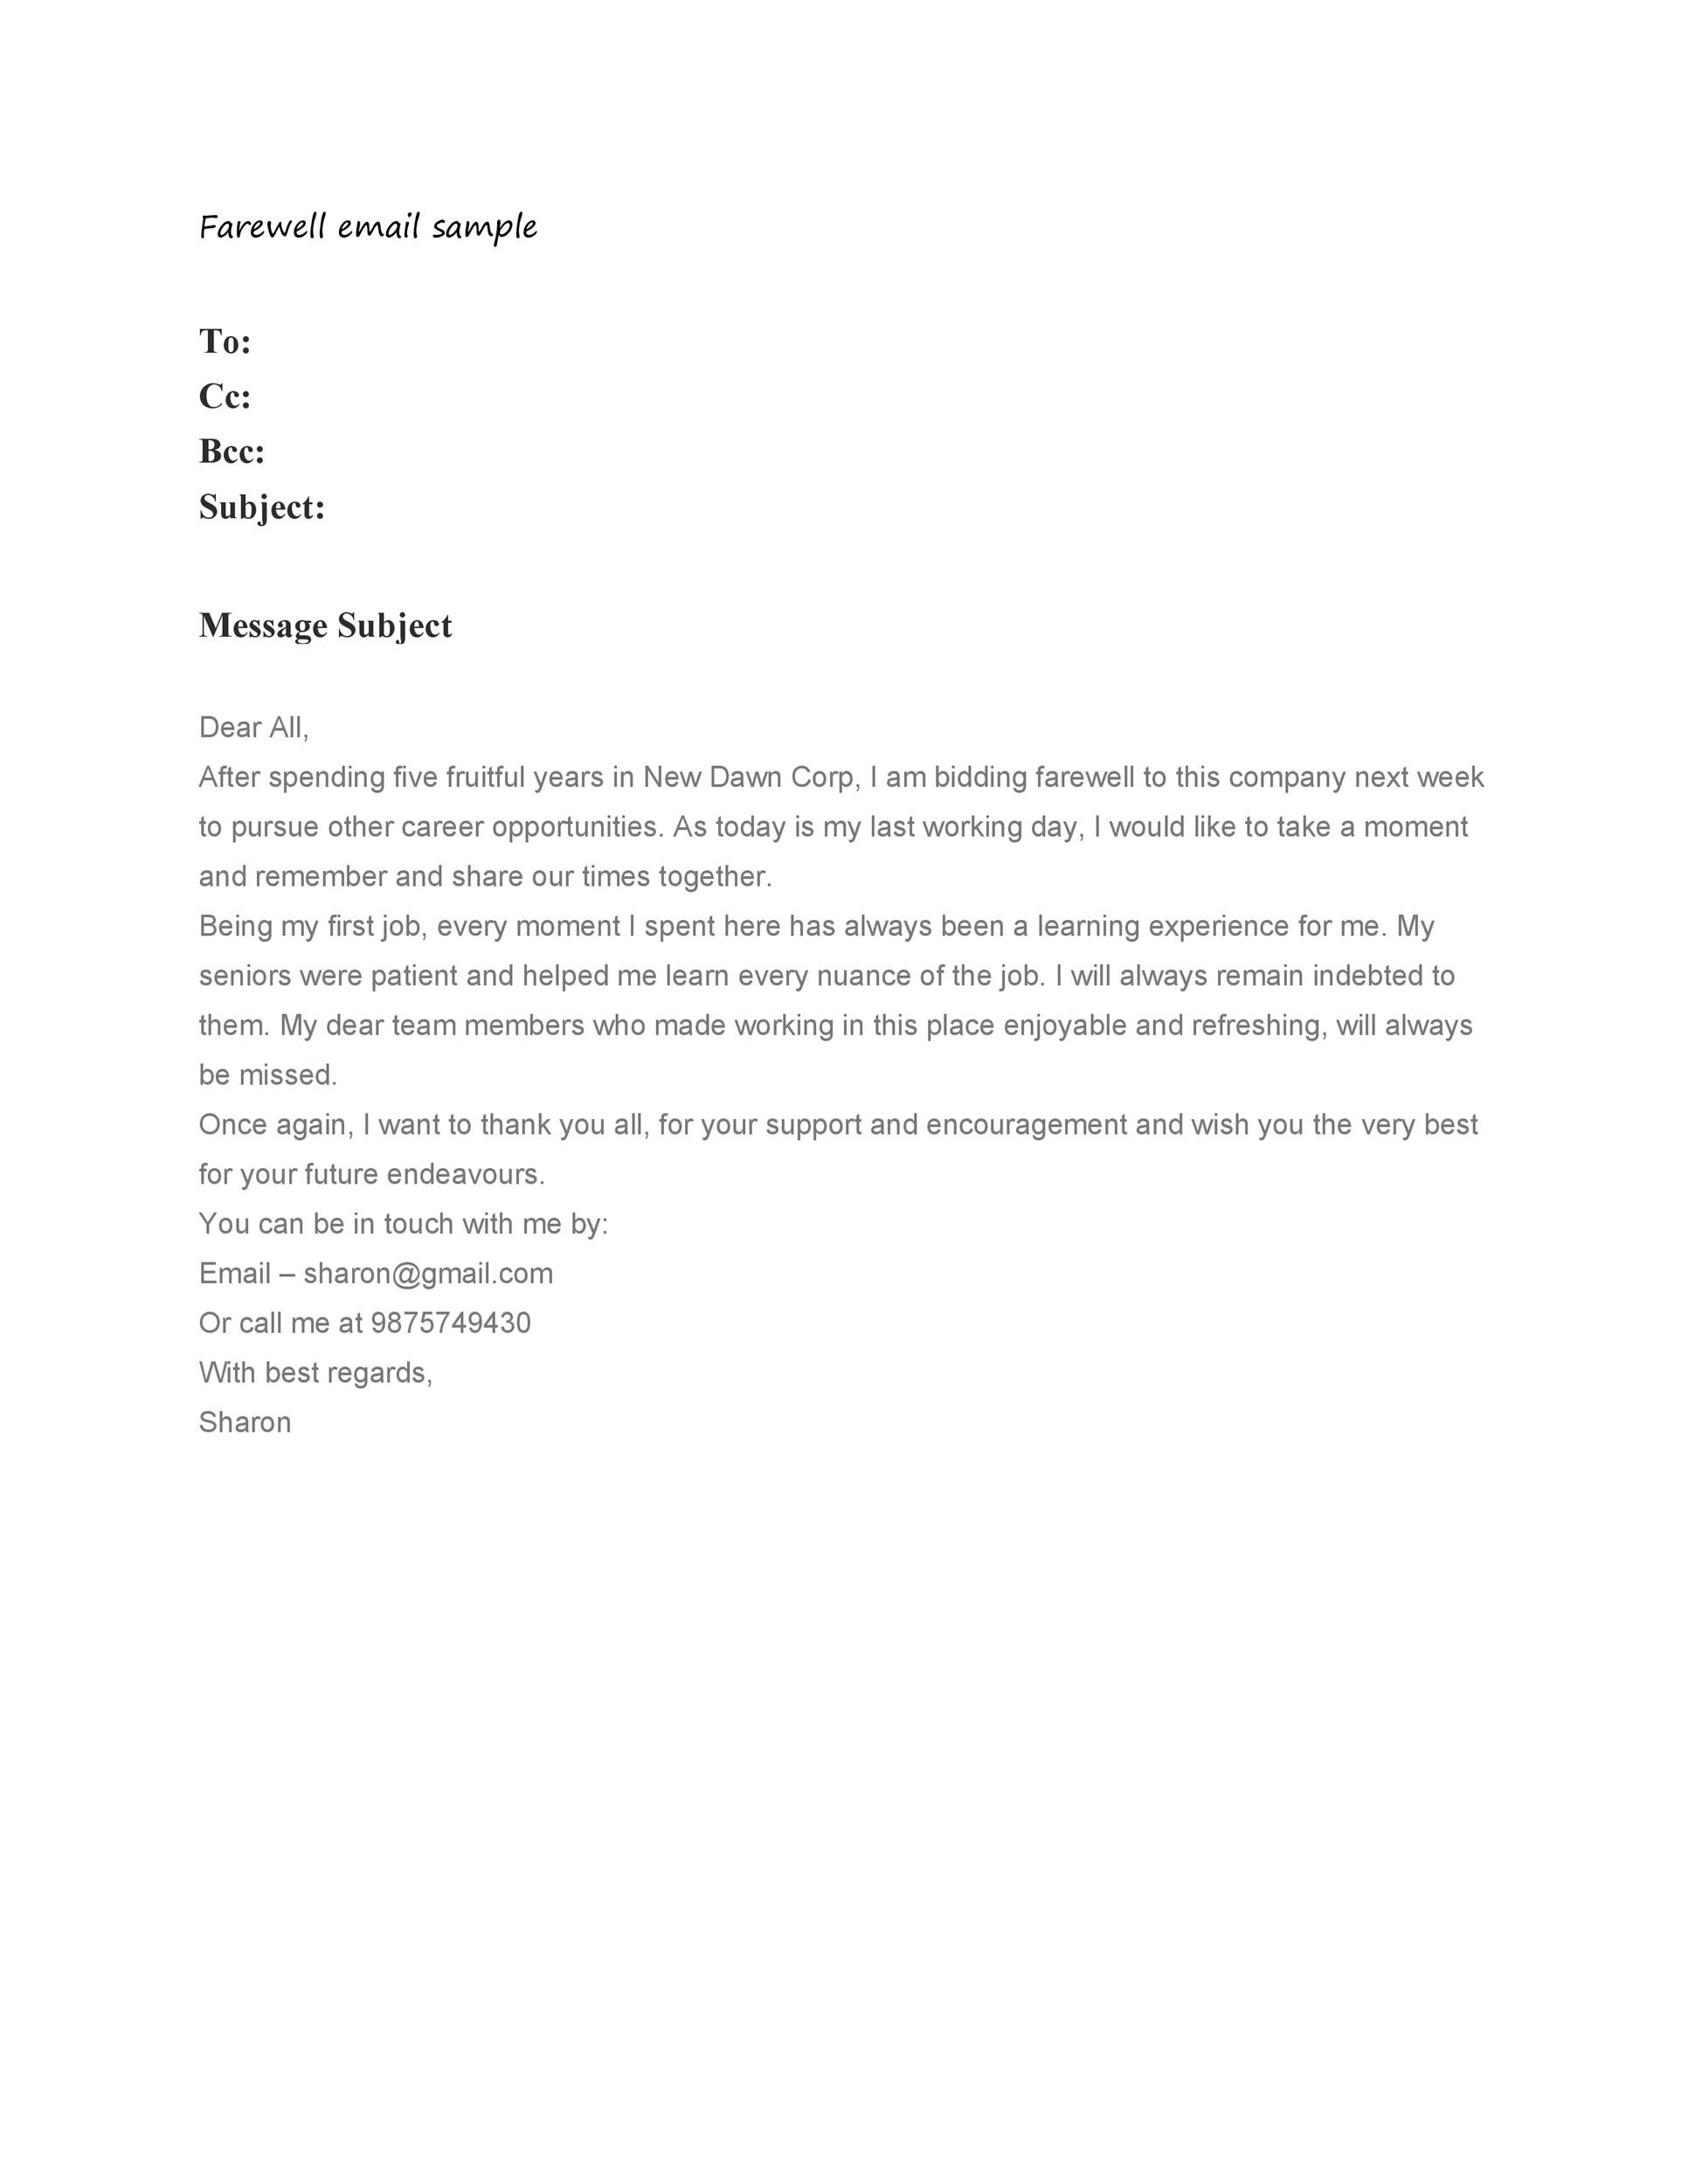 Free farewell email template 31